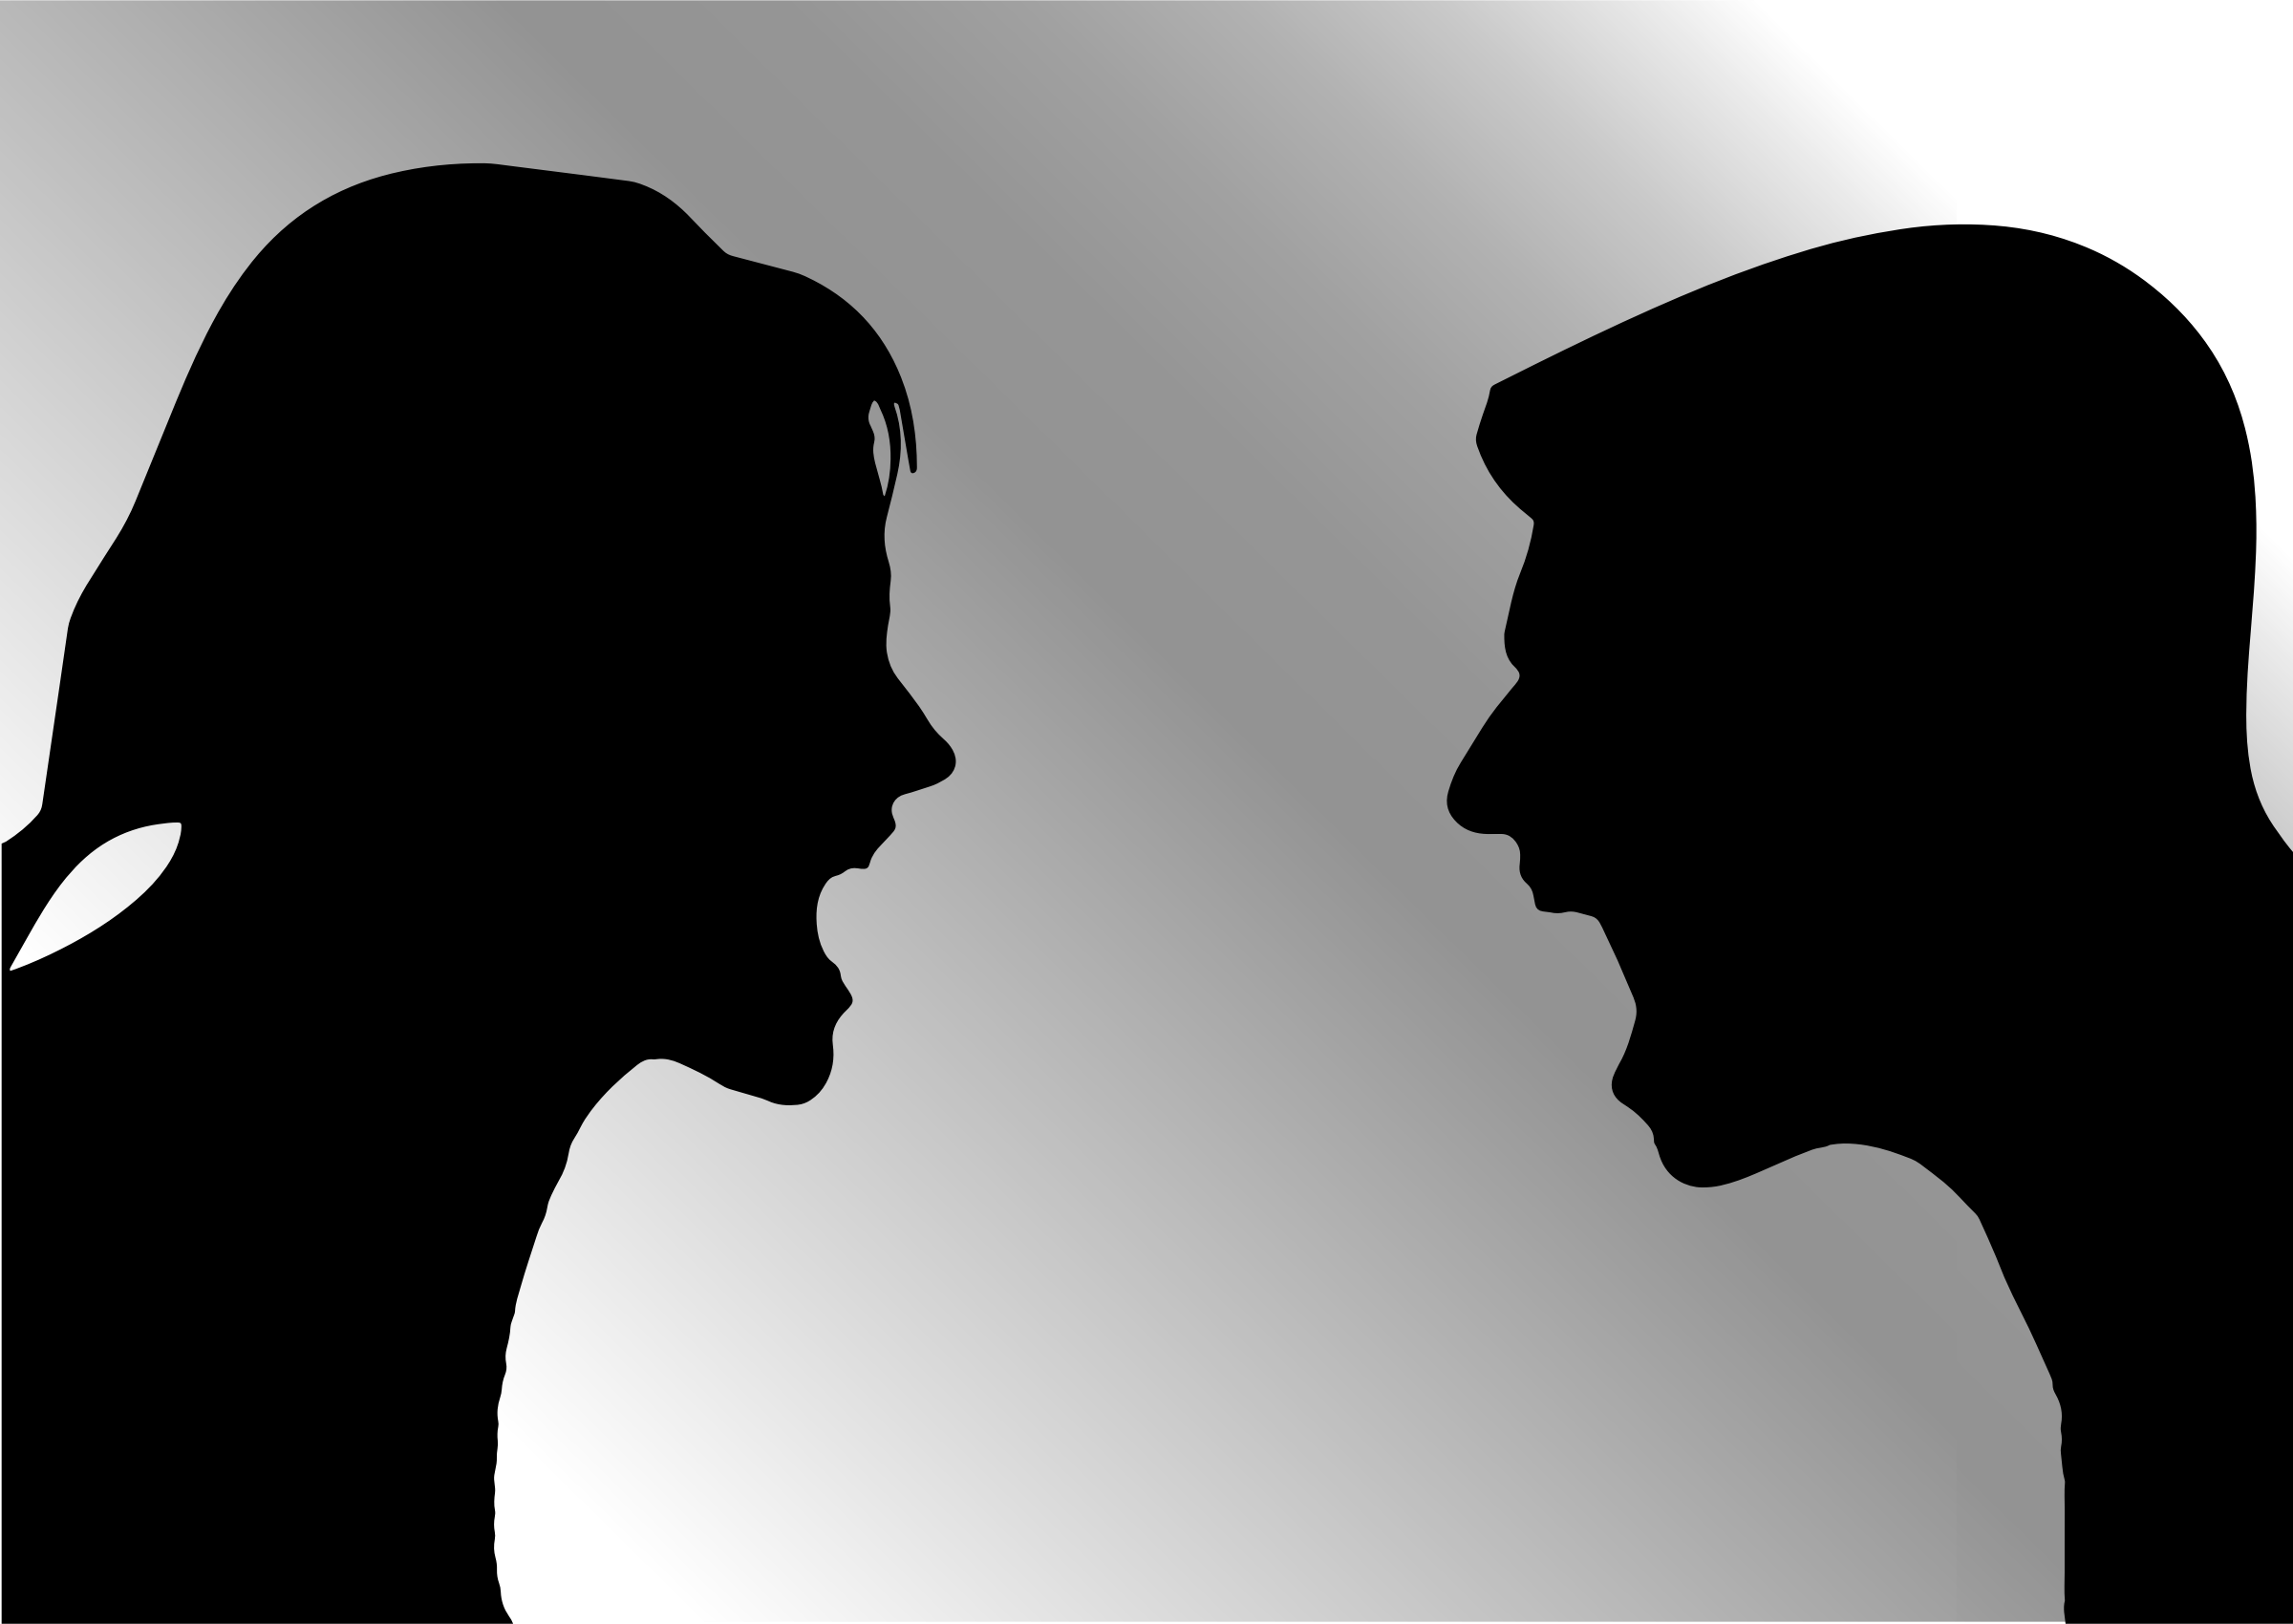 Man Woman Arguing Silhouette by GDJ